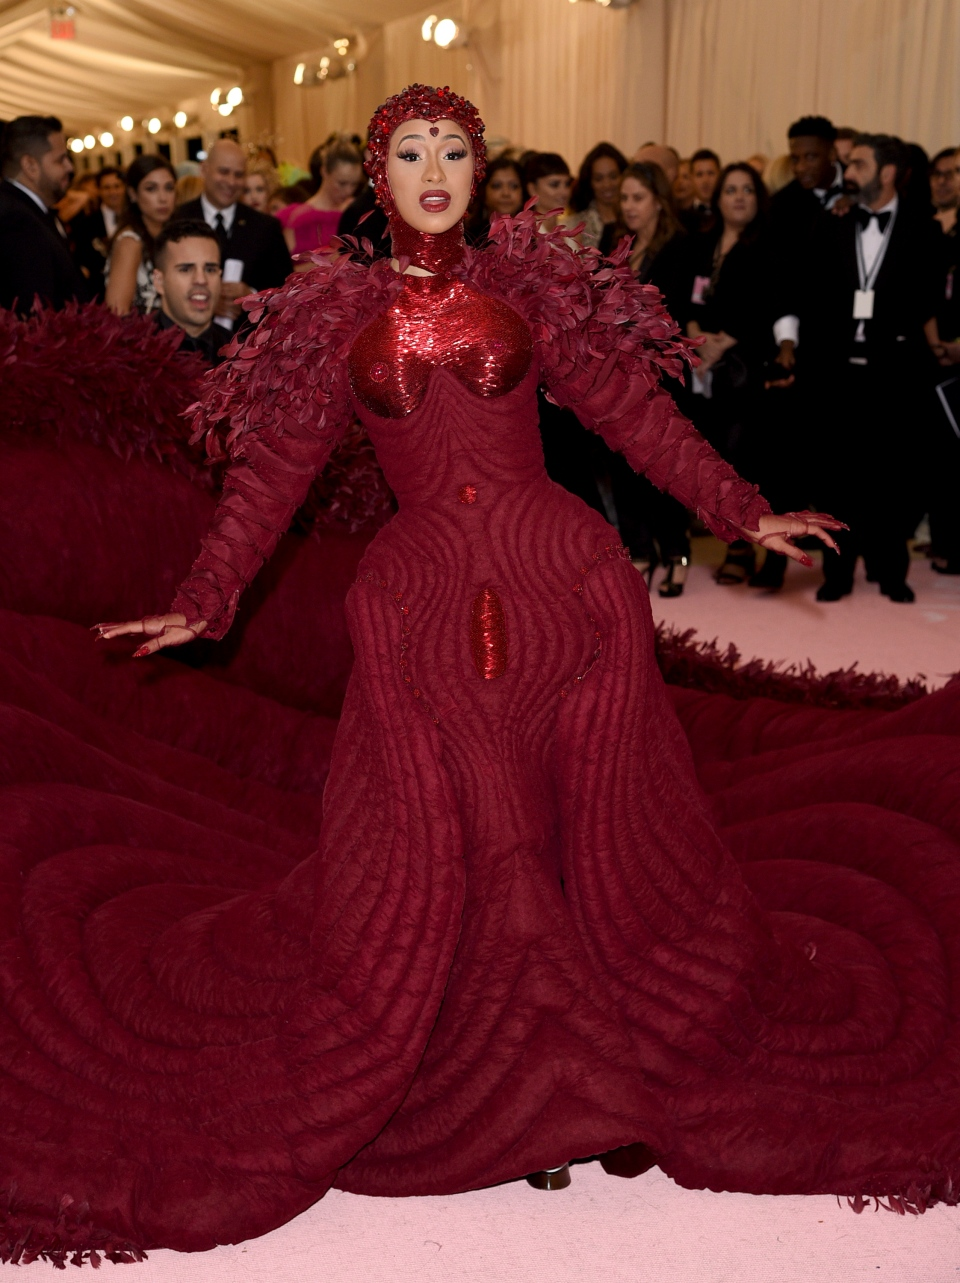 """Cardi B attends The Metropolitan Museum of Art's Costume Institute benefit gala celebrating the opening of the """"Camp: Notes on Fashion"""" exhibition on Monday, May 6, 2019, in New York. (Photo by Evan Agostini/Invision/AP)"""